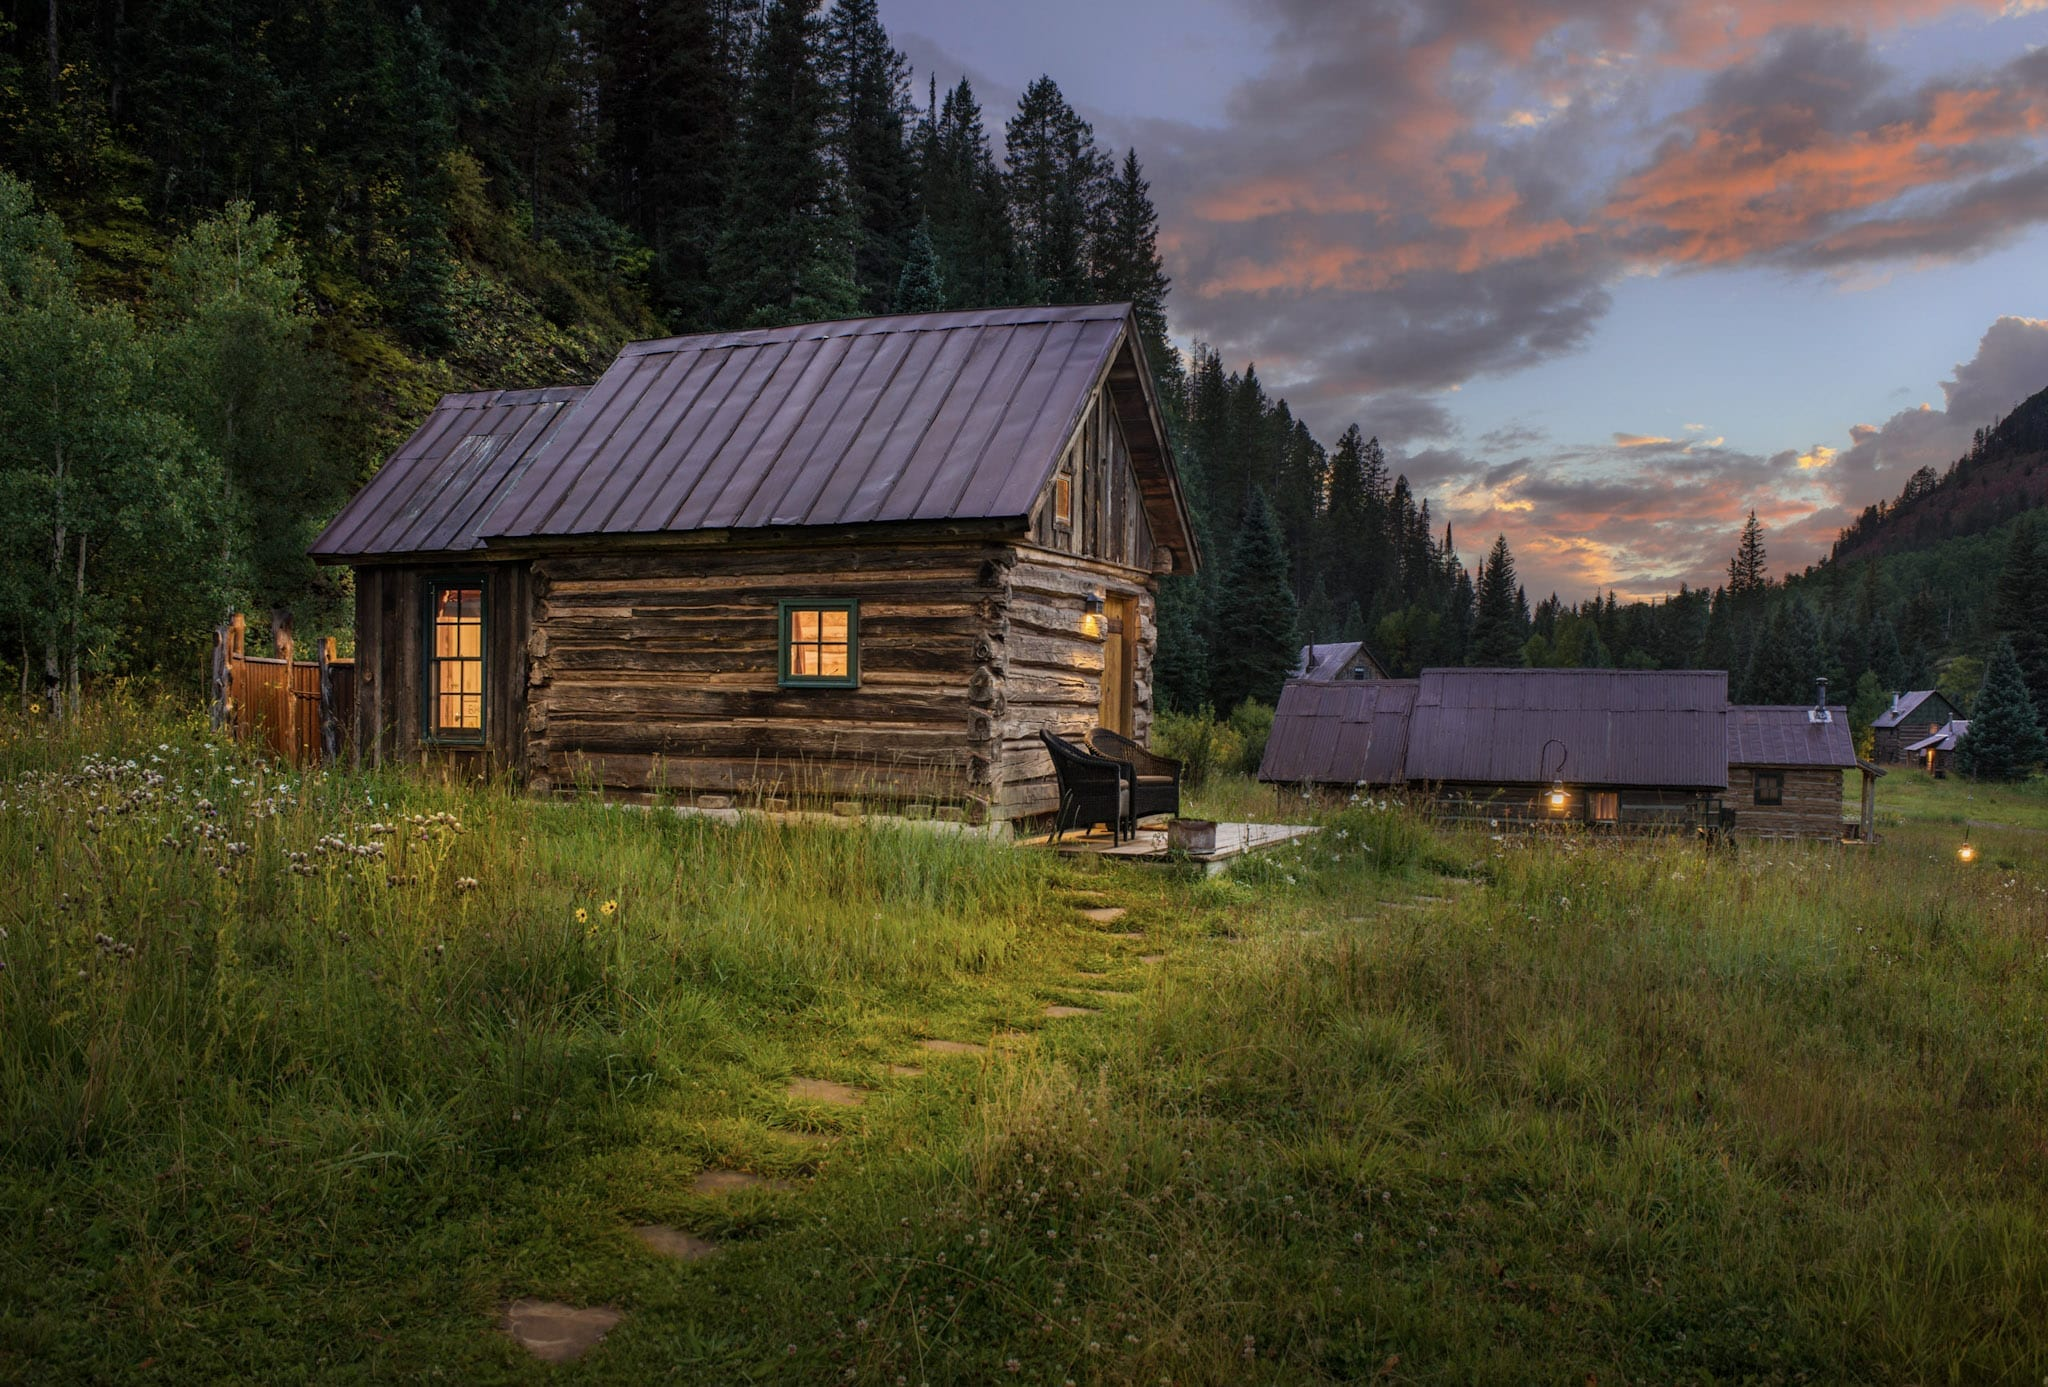 Exterior of Echo Cabin at Dusk Dunton Hot Springs Colorado USA